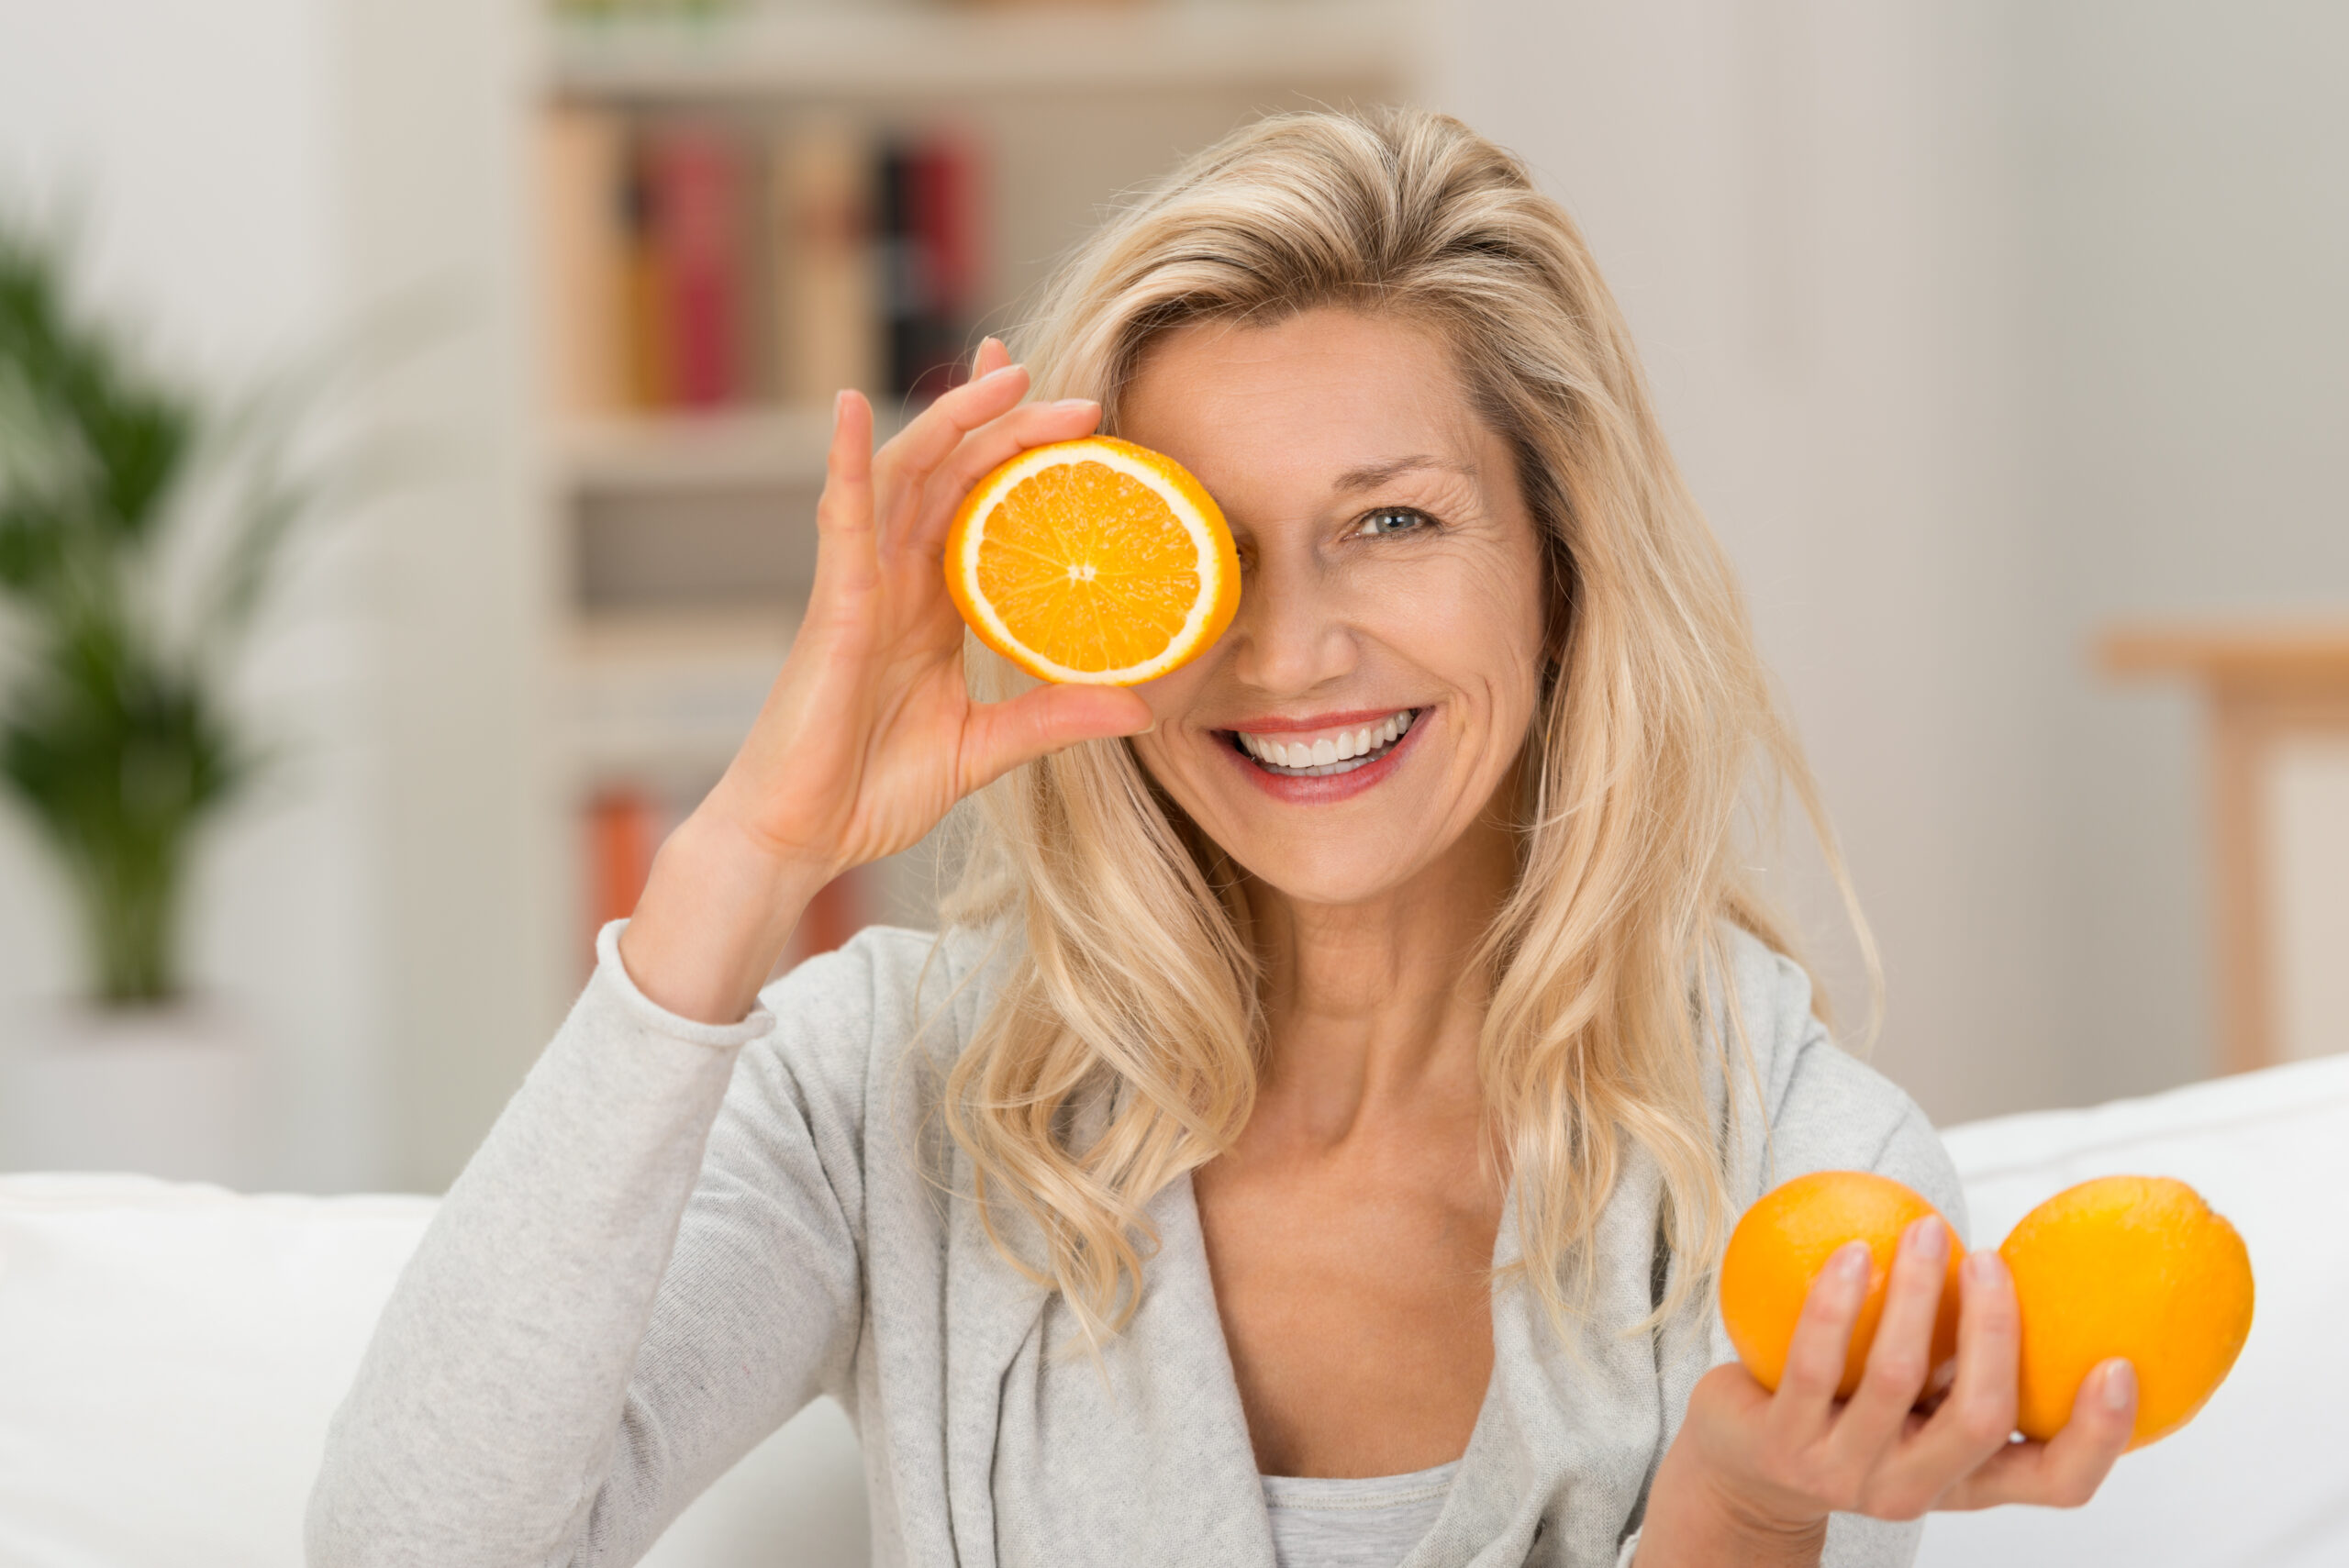 Happy,Healthy,Woman,Playing,With,Fresh,Ripe,Oranges,Holding,Two